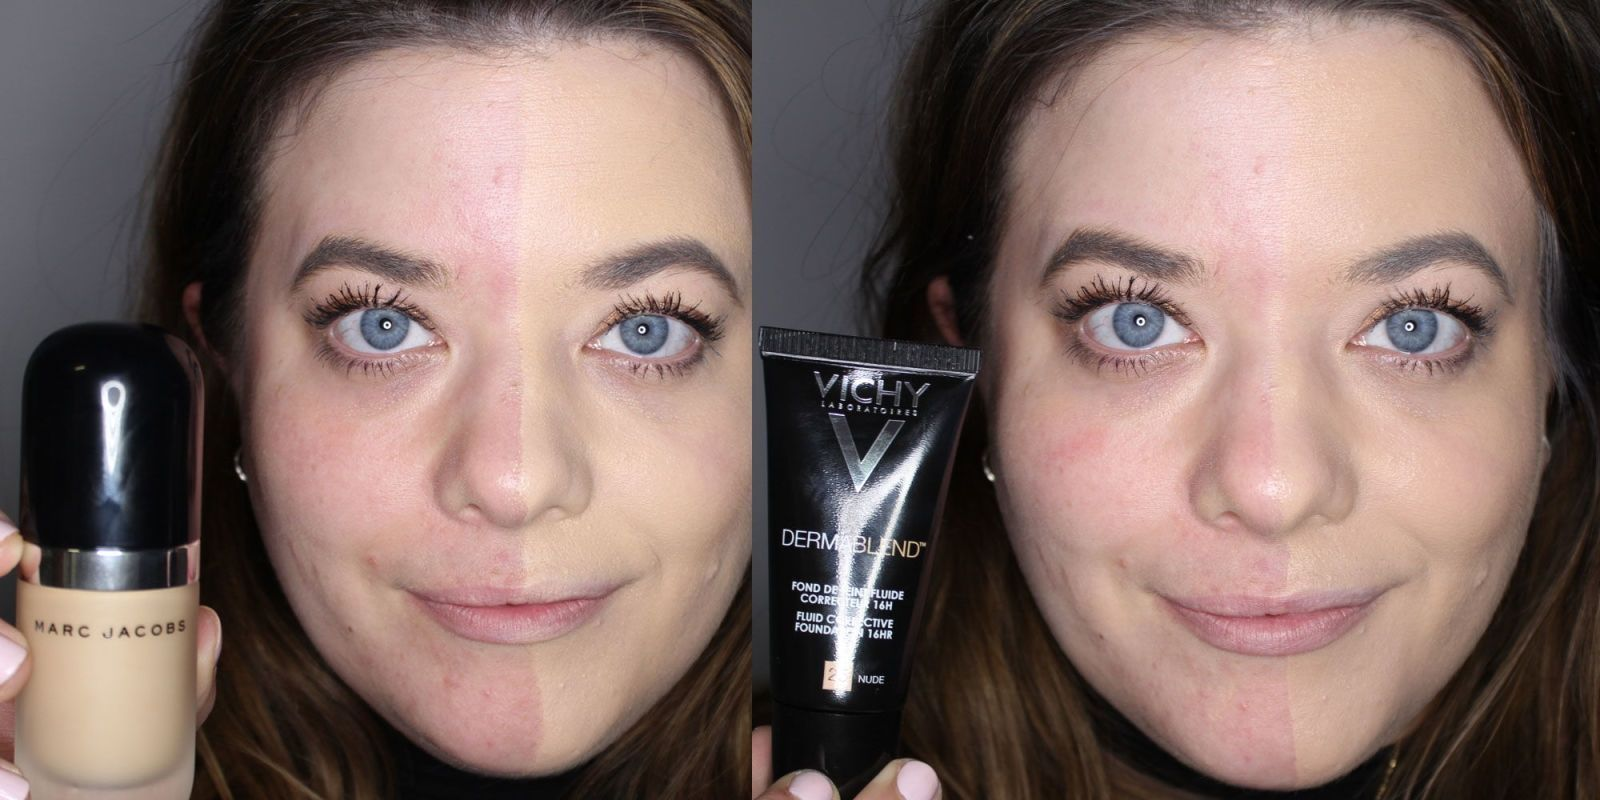 We tested 5 full coverage foundations on half a face